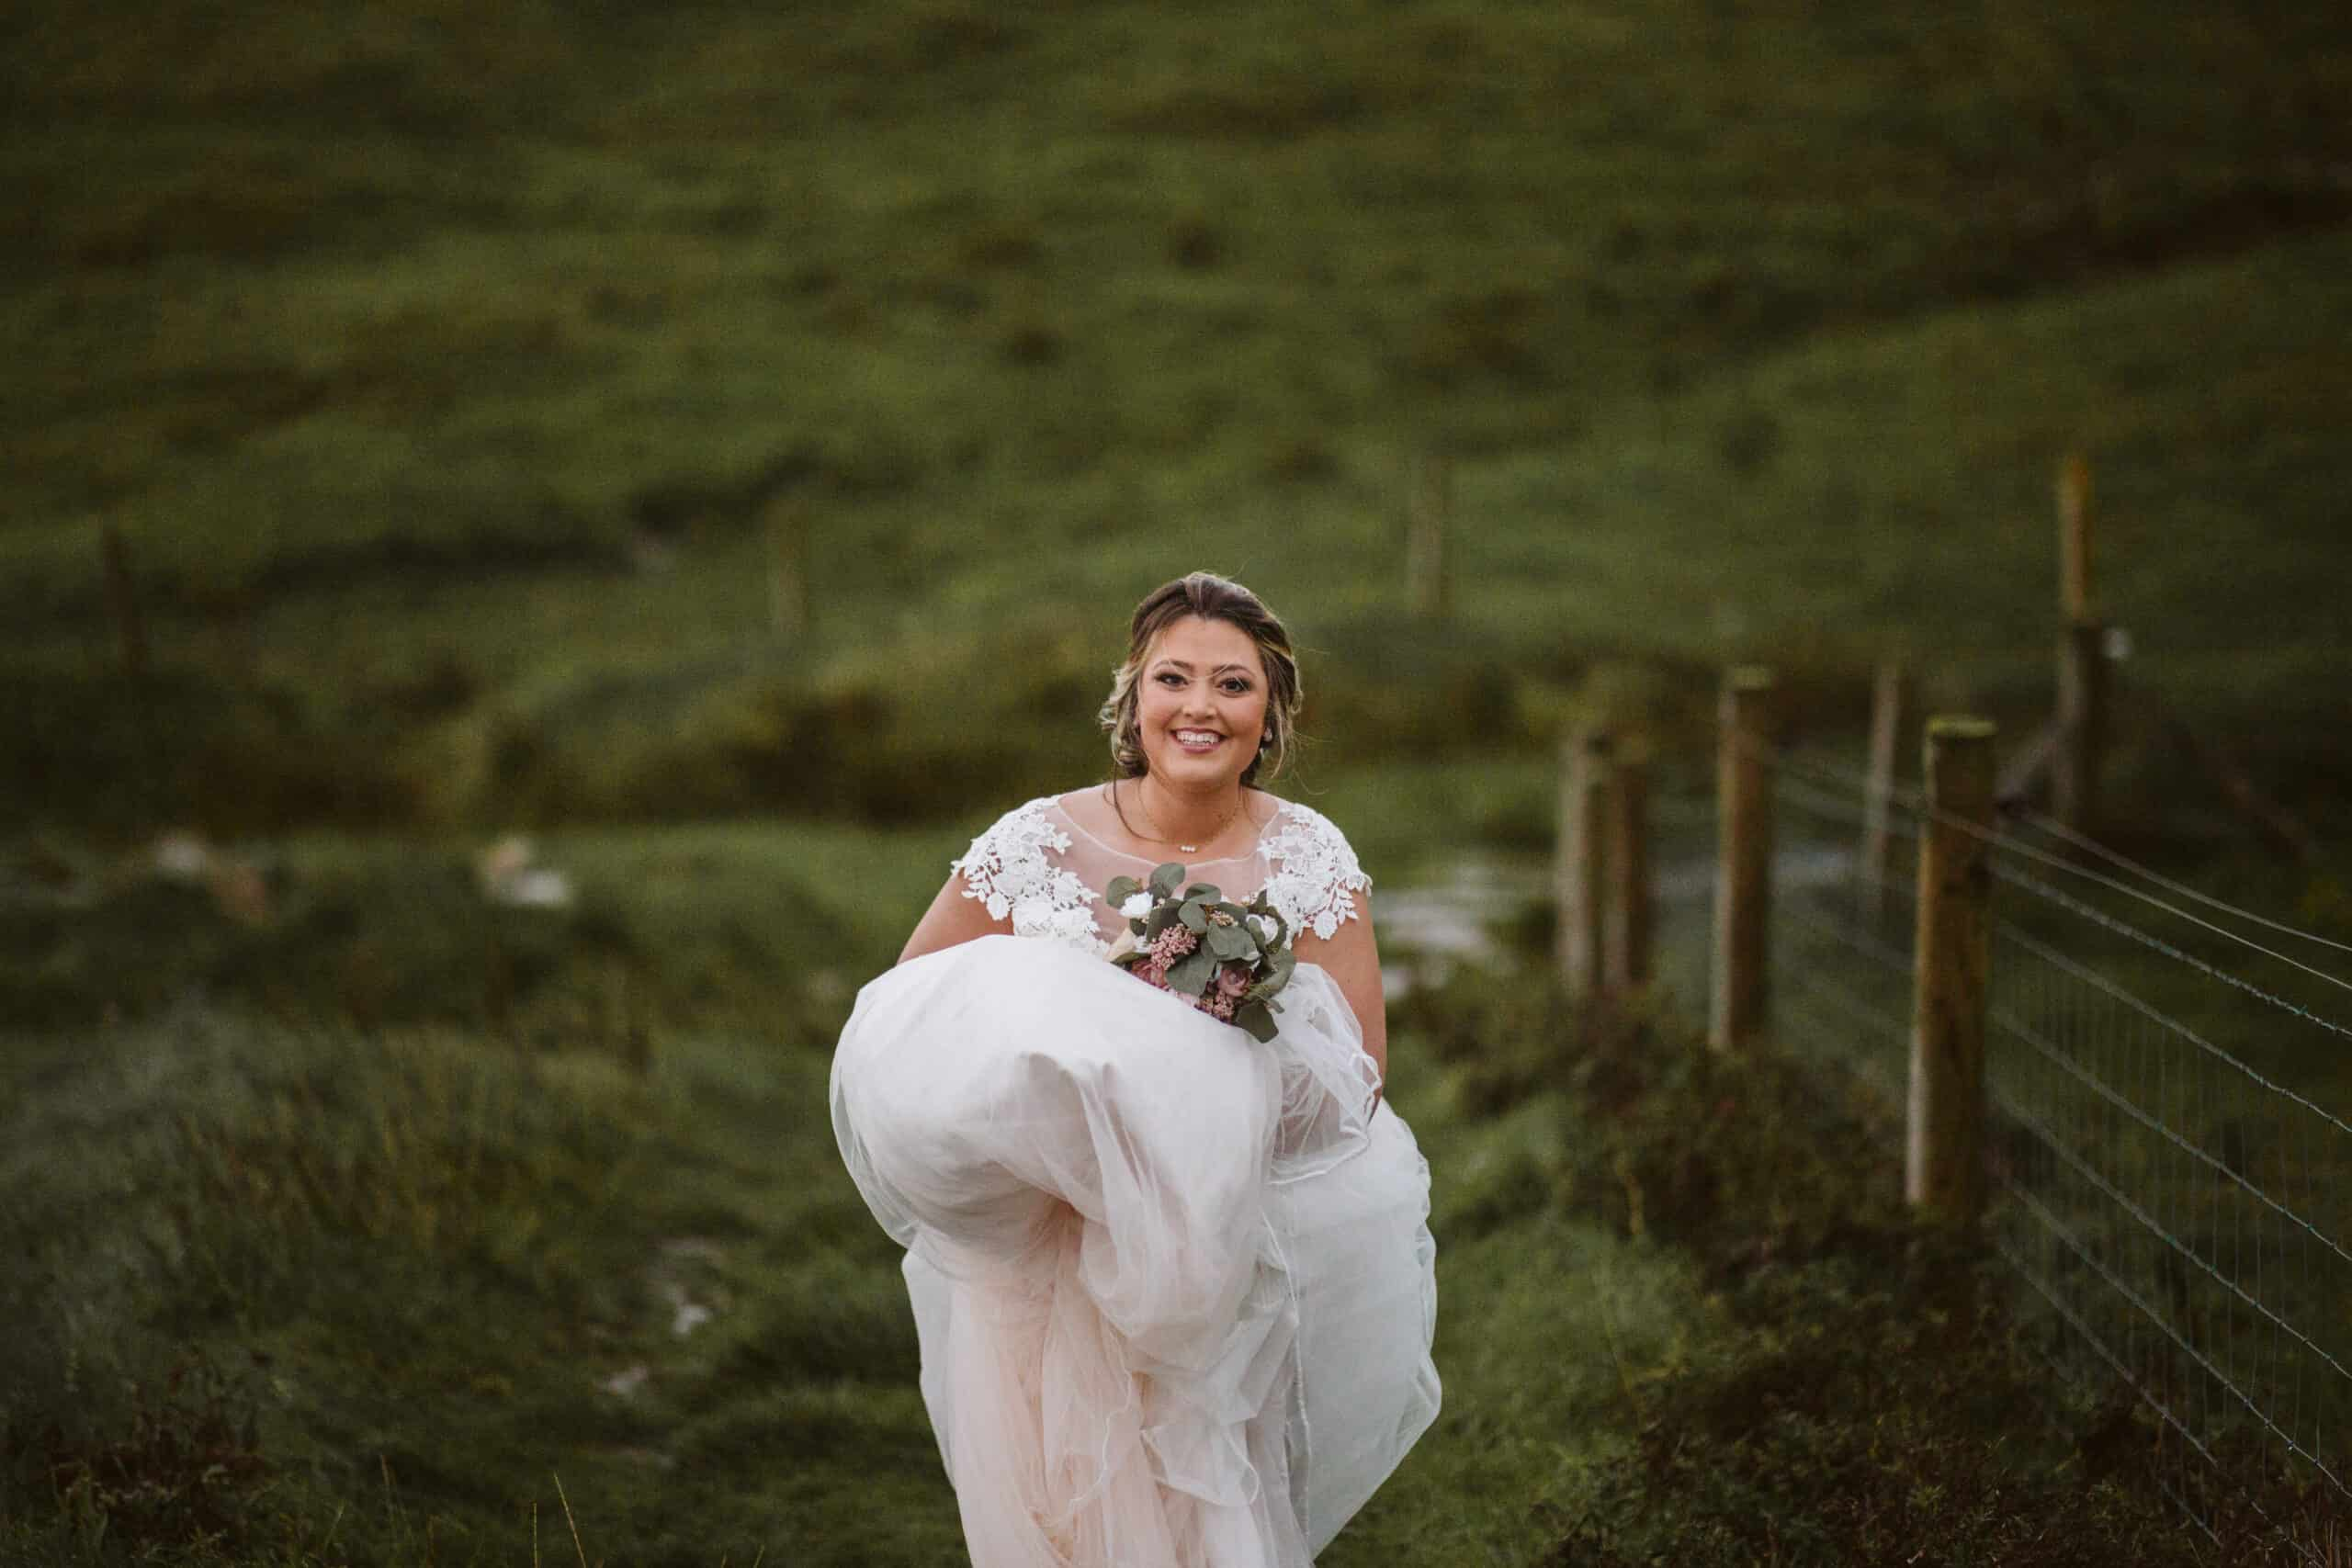 Cliffs of Moher Wedding Hags head, bride laughing as she walks